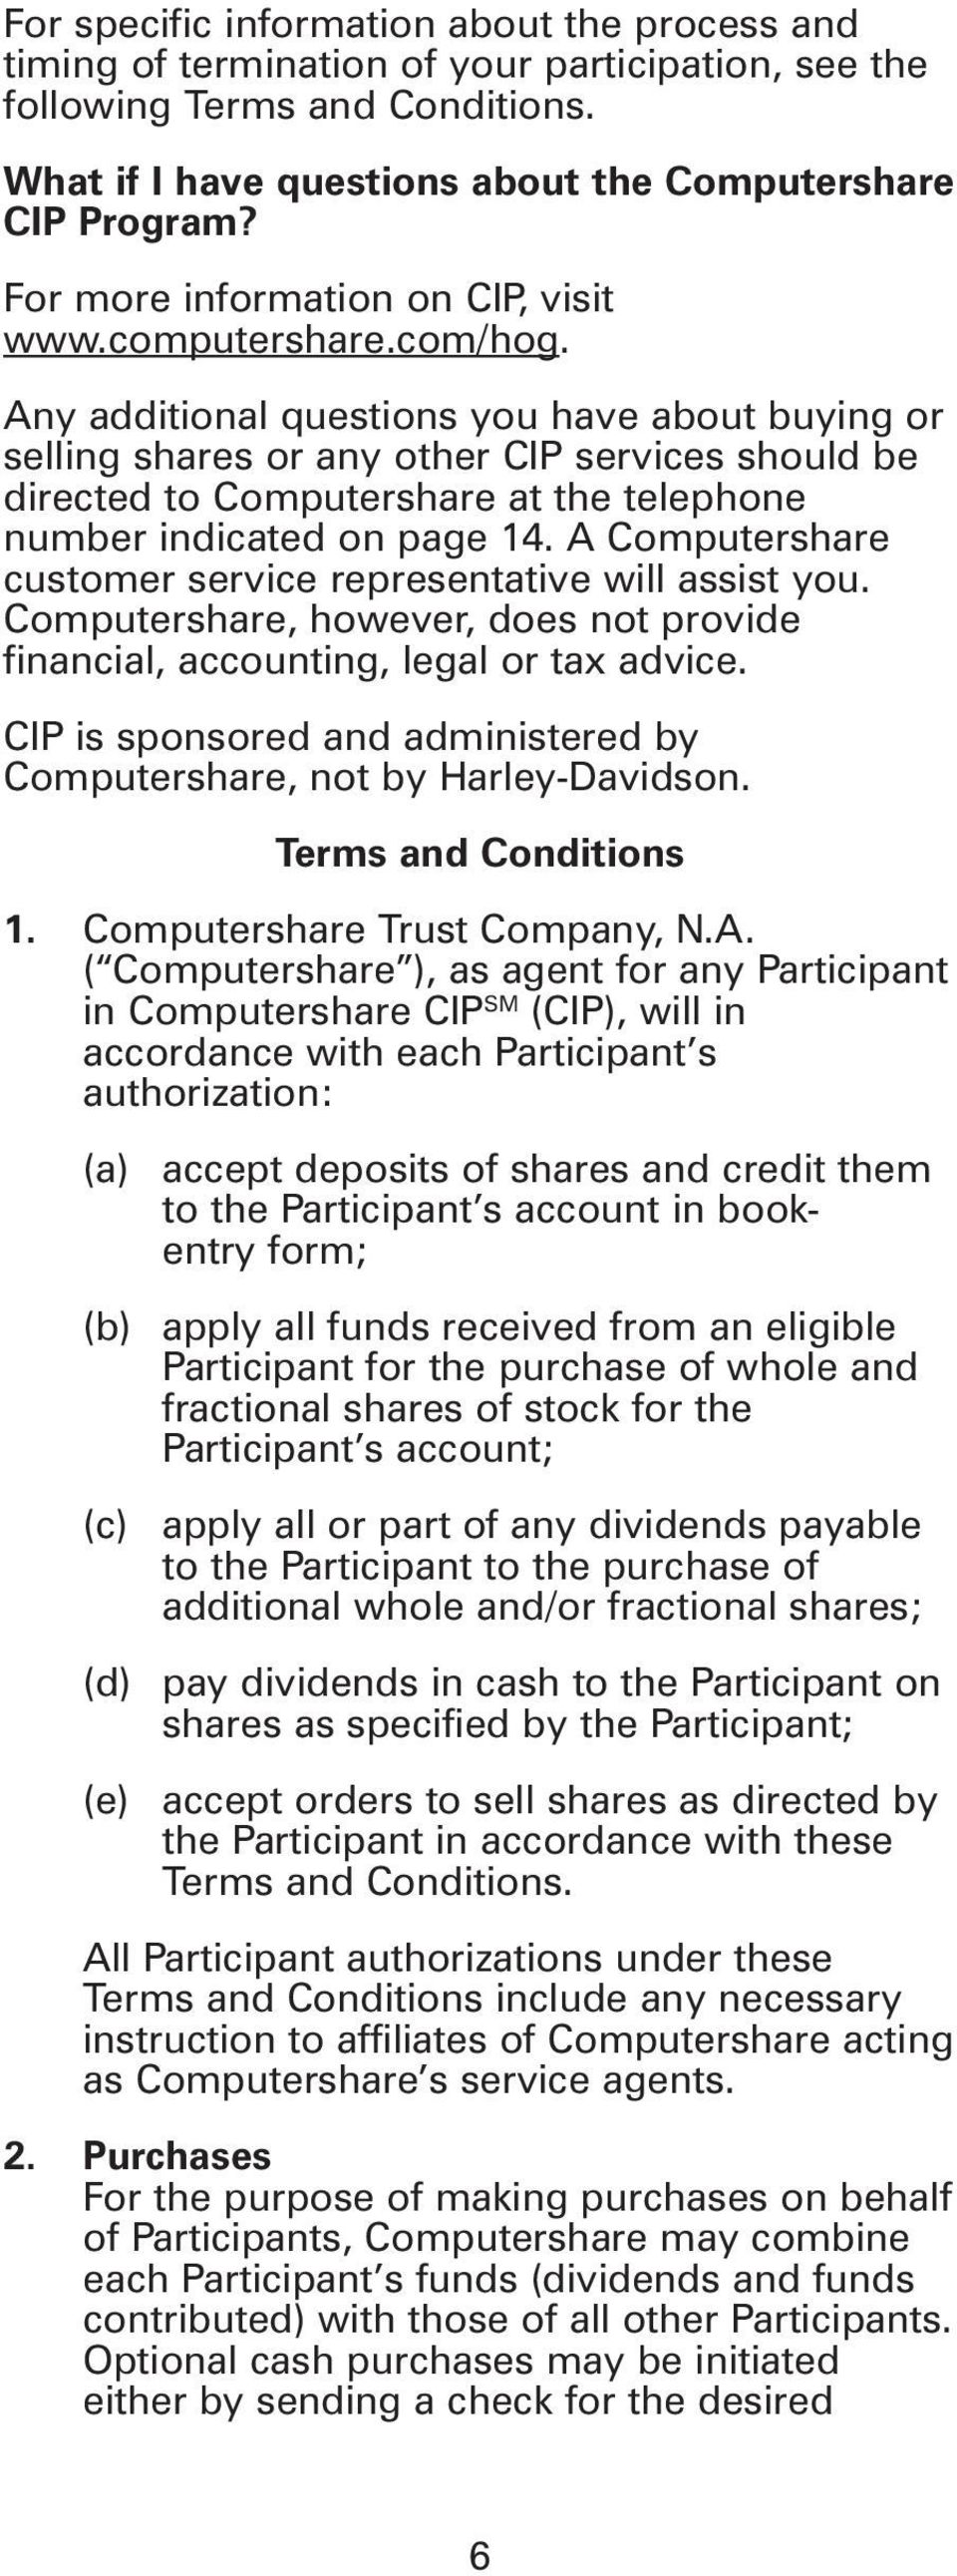 Any additional questions you have about buying or selling shares or any other CIP services should be directed to Computershare at the telephone number indicated on page 14.